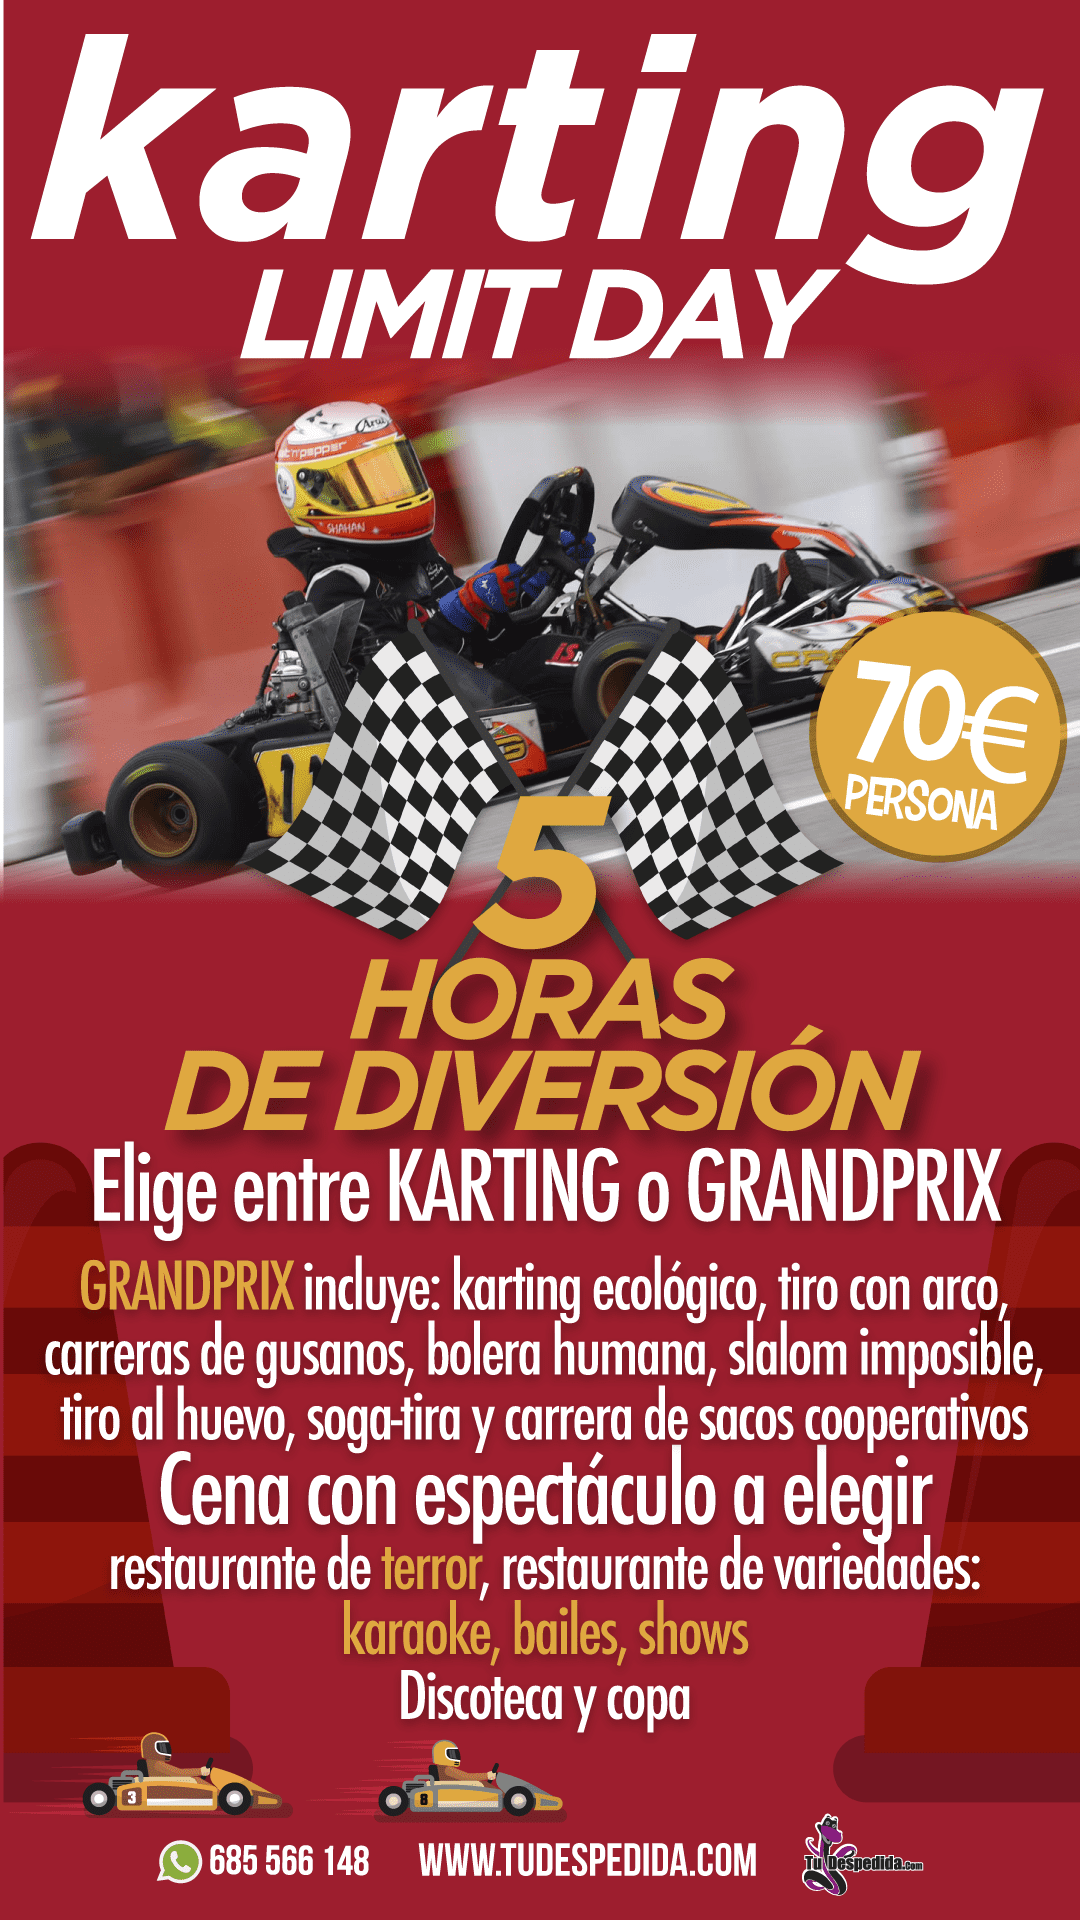 Karting Madrid